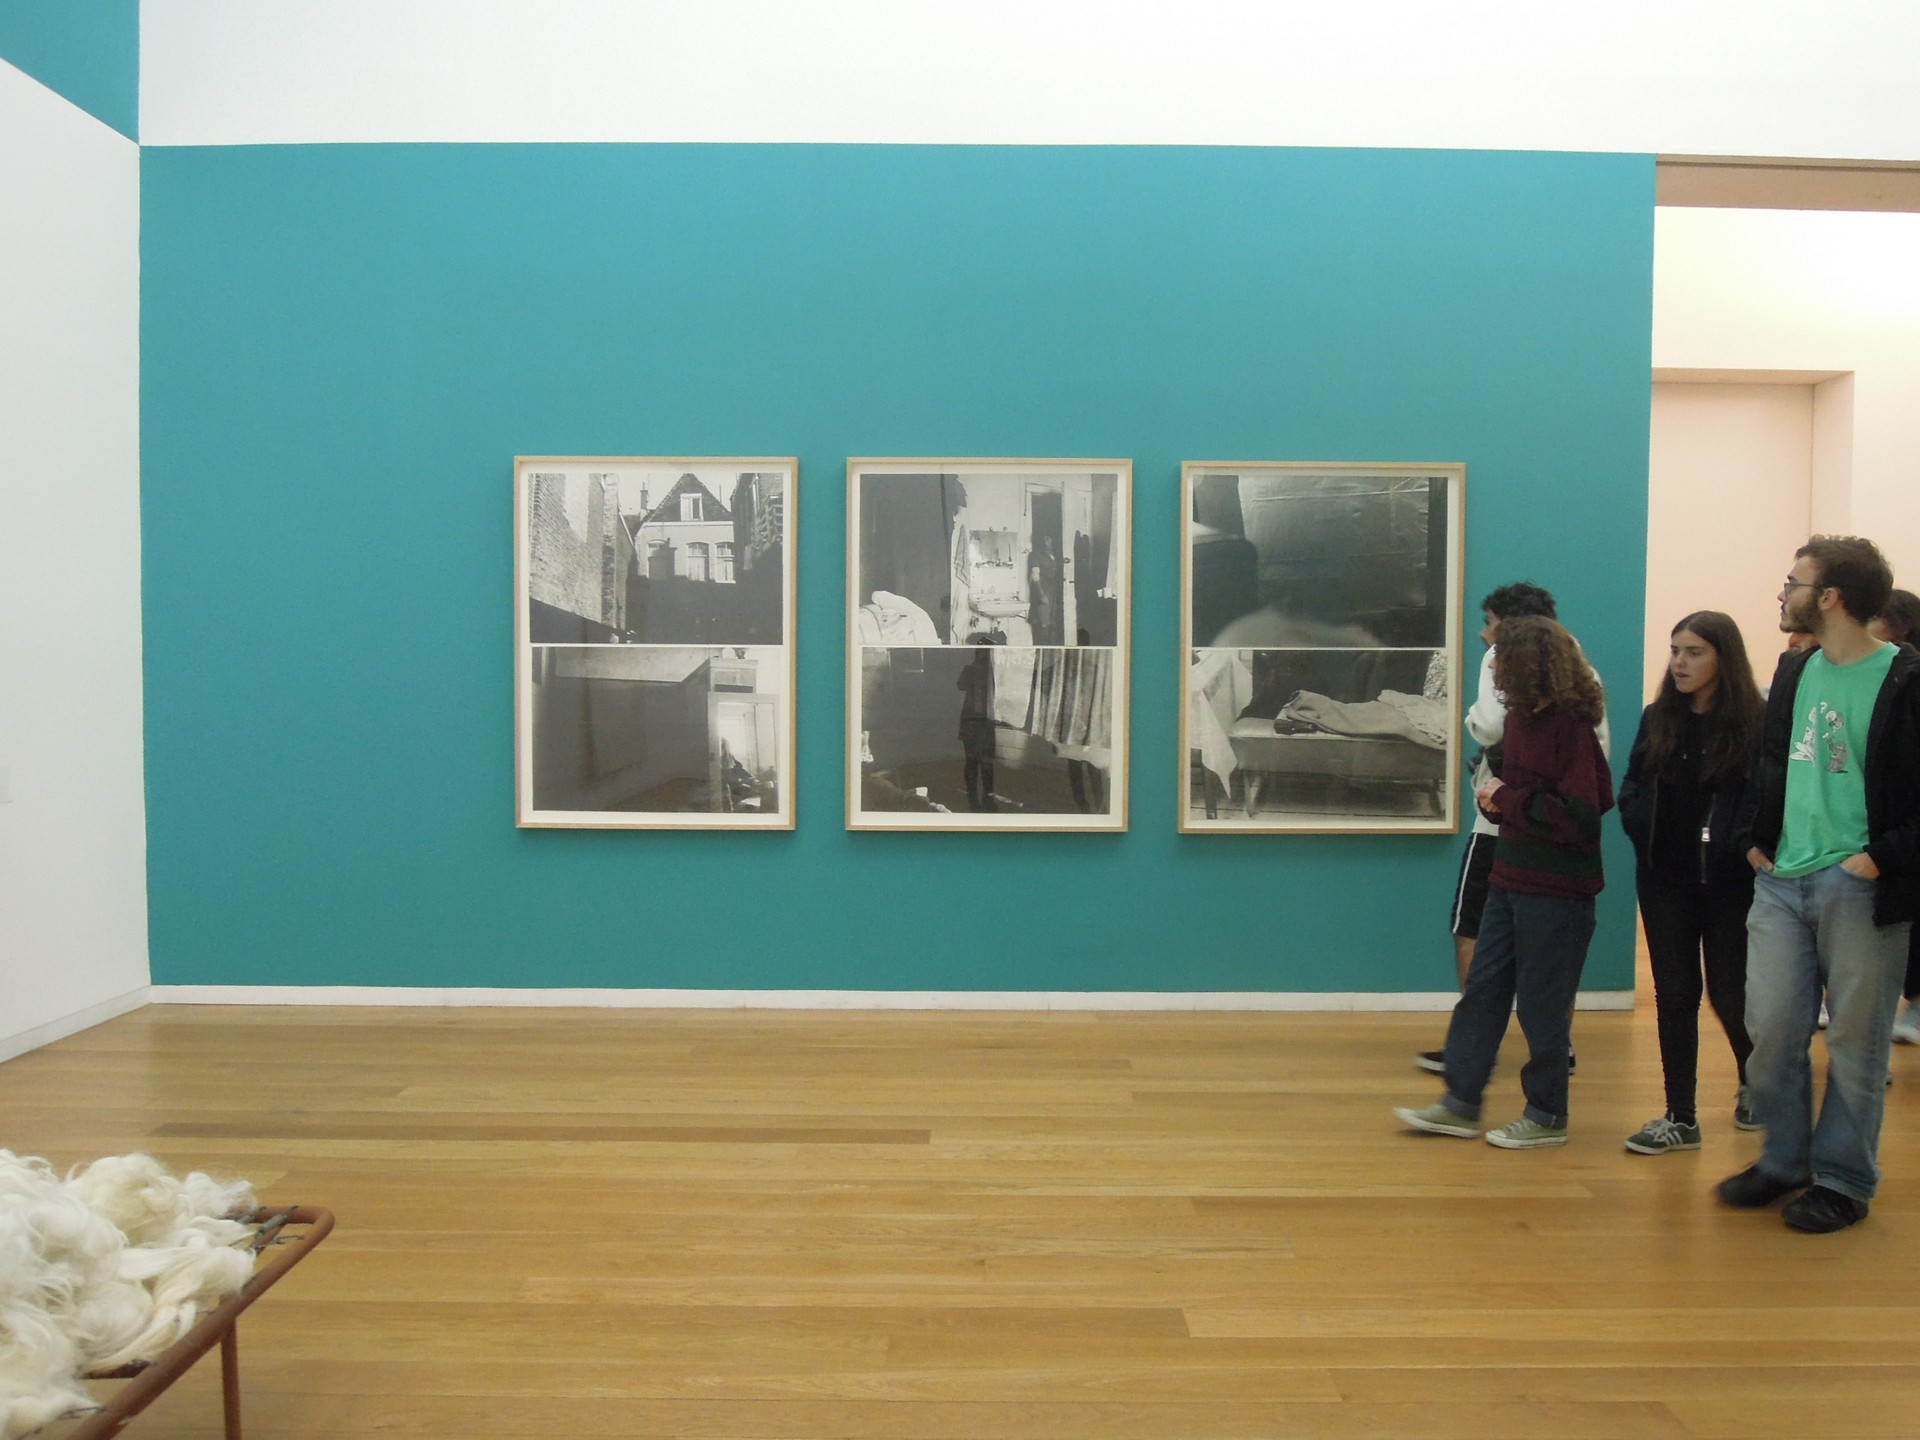 Serralves Foundation, The Master Place For Art To Be Discovered serralves foundation Serralves Foundation, The Master Place For Art To Be Discovered Serralves Foundation The Master Place For Art To Be Discovered 3